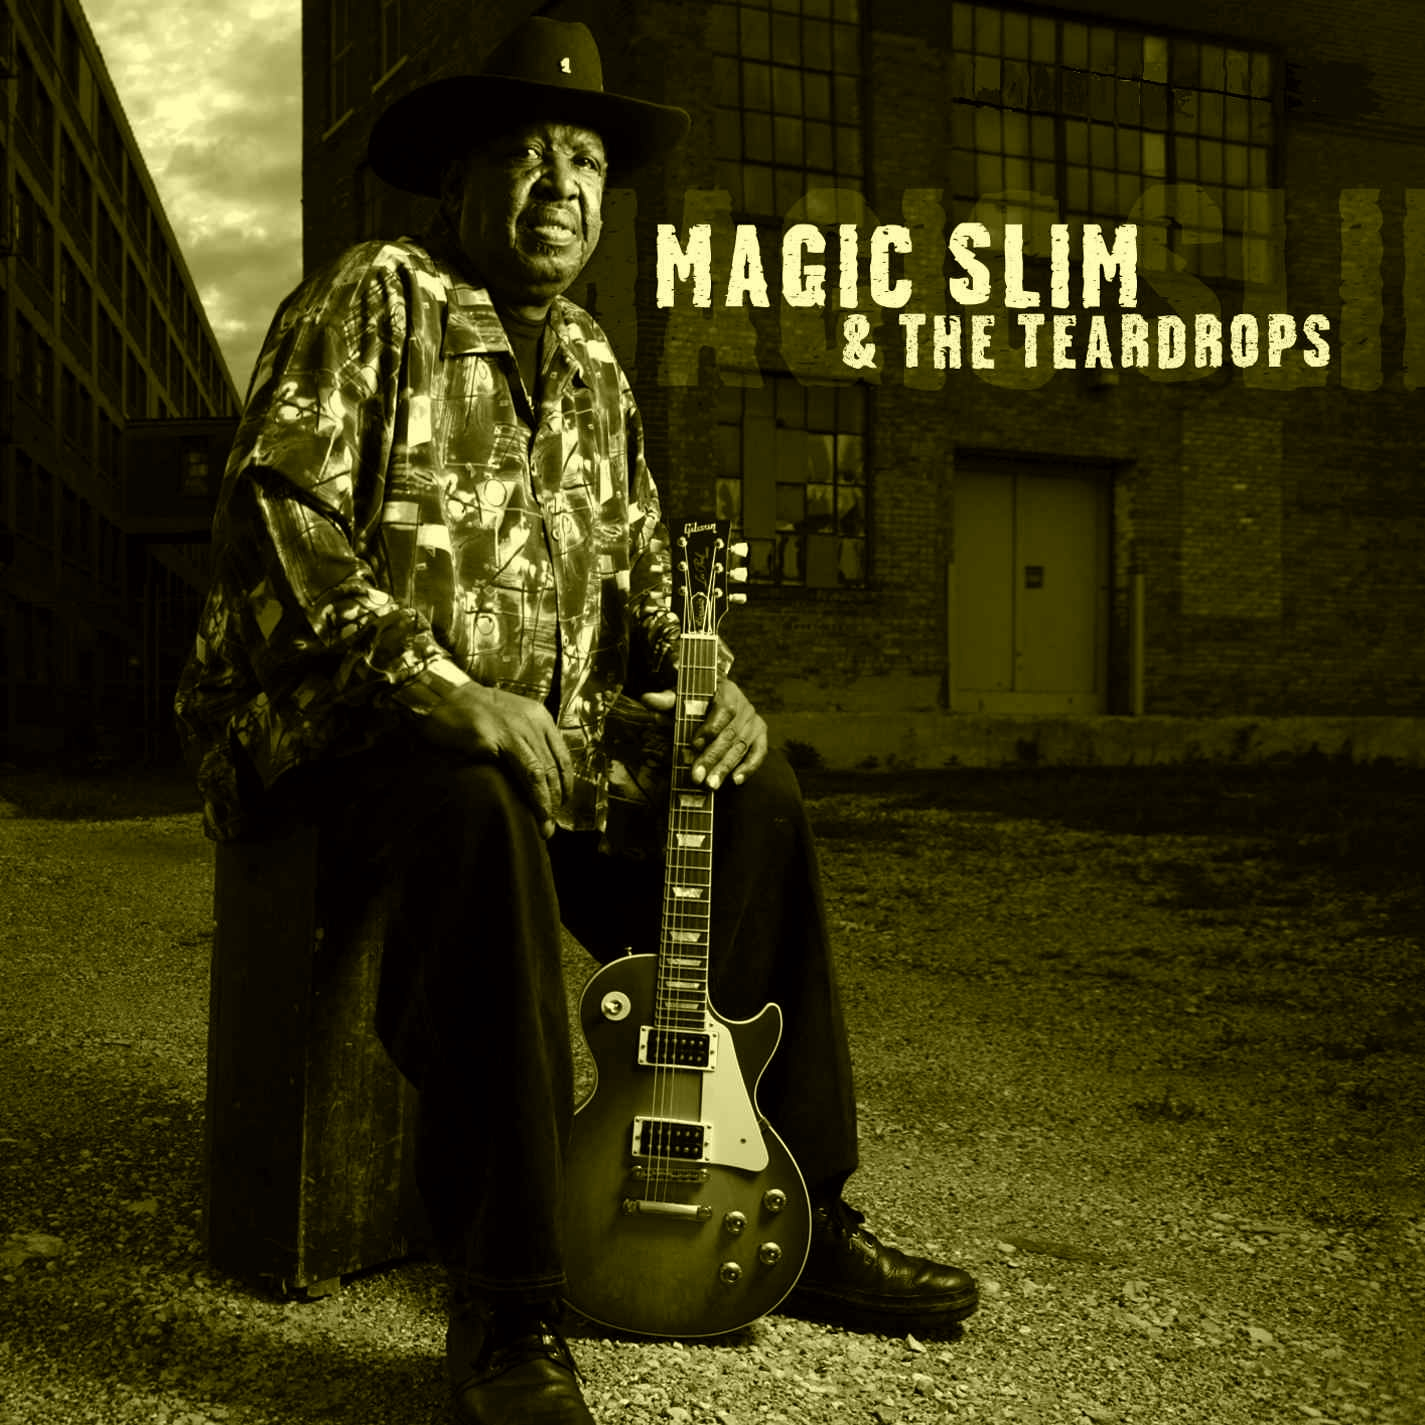 Magic Slim & the Teardrops (USA)